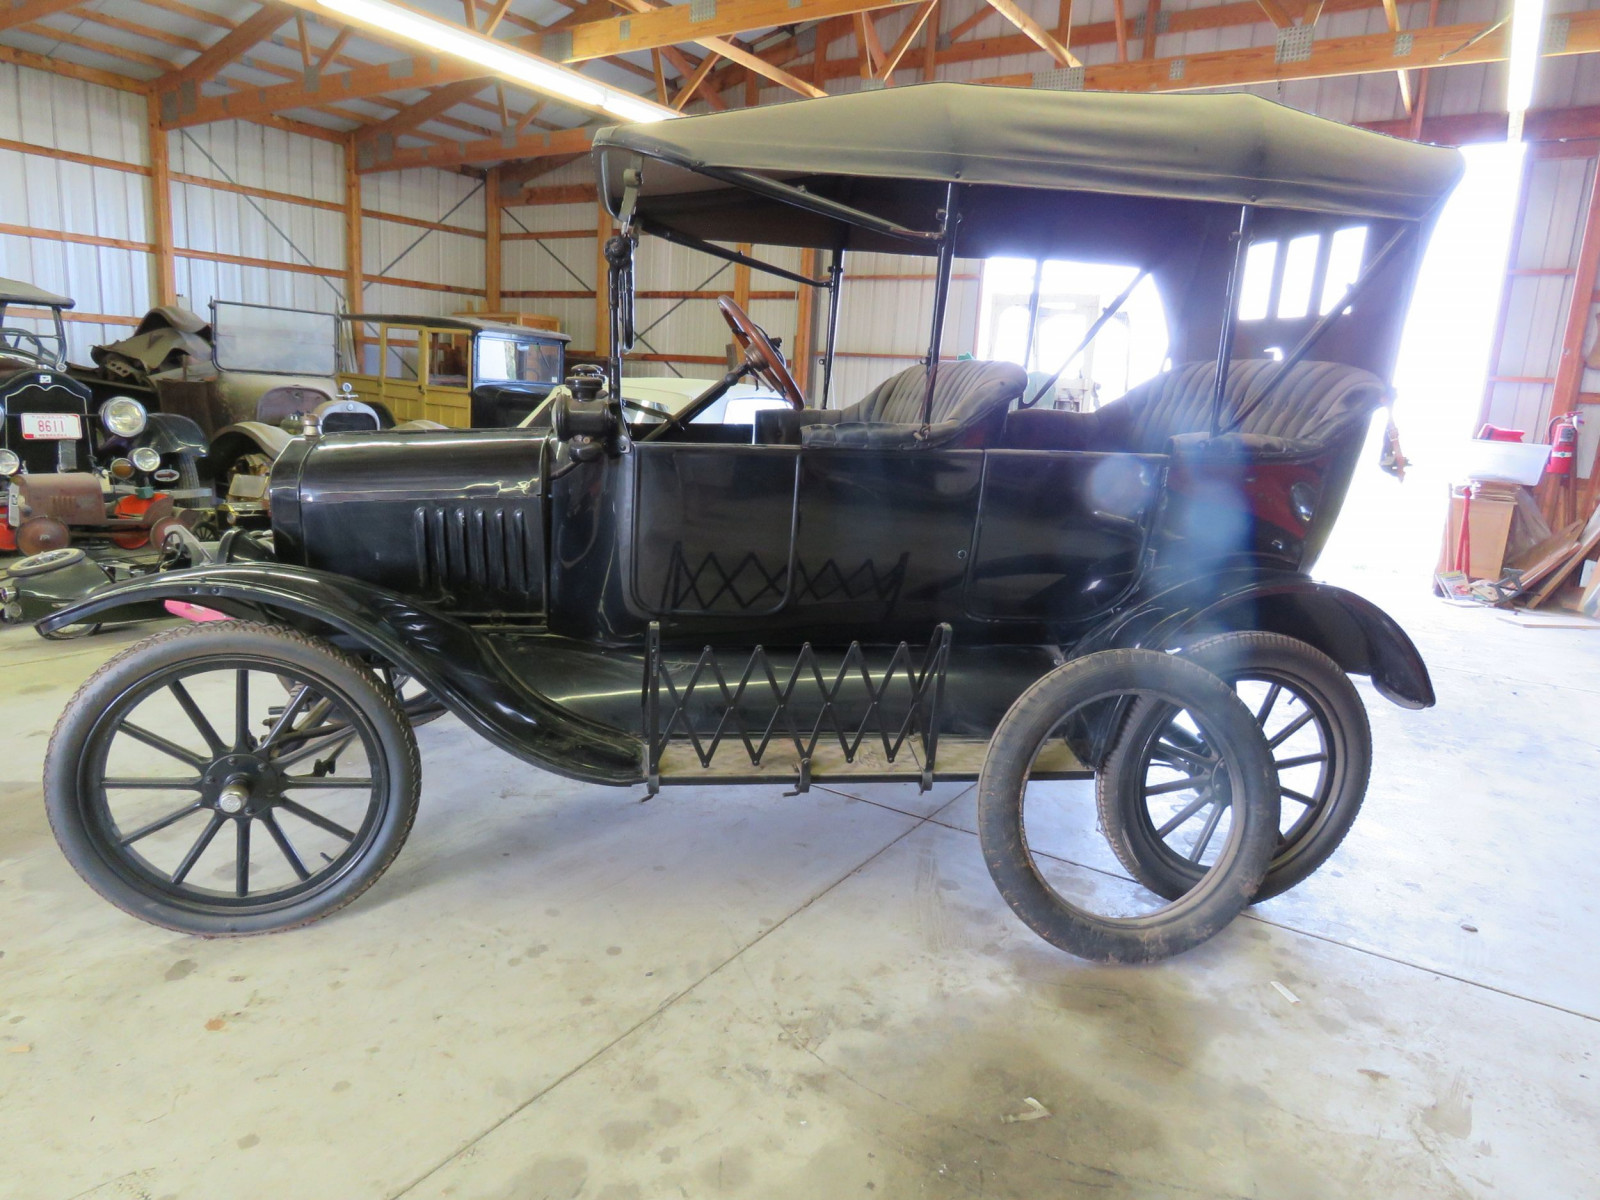 1918 Ford Model T Touring Car - Image 4